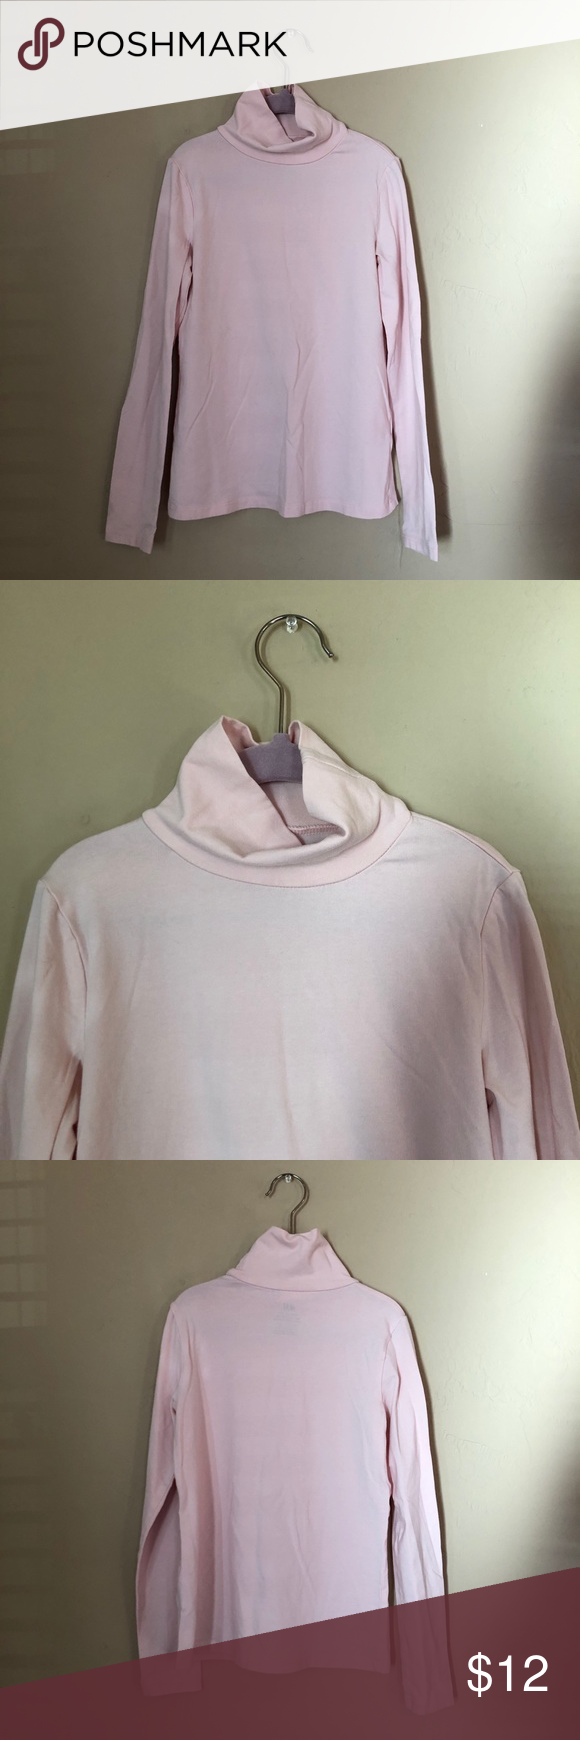 7ef9e6be3b5b7693d730d05b5ffc236f - How To Get A Pink Tint Out Of White Clothes